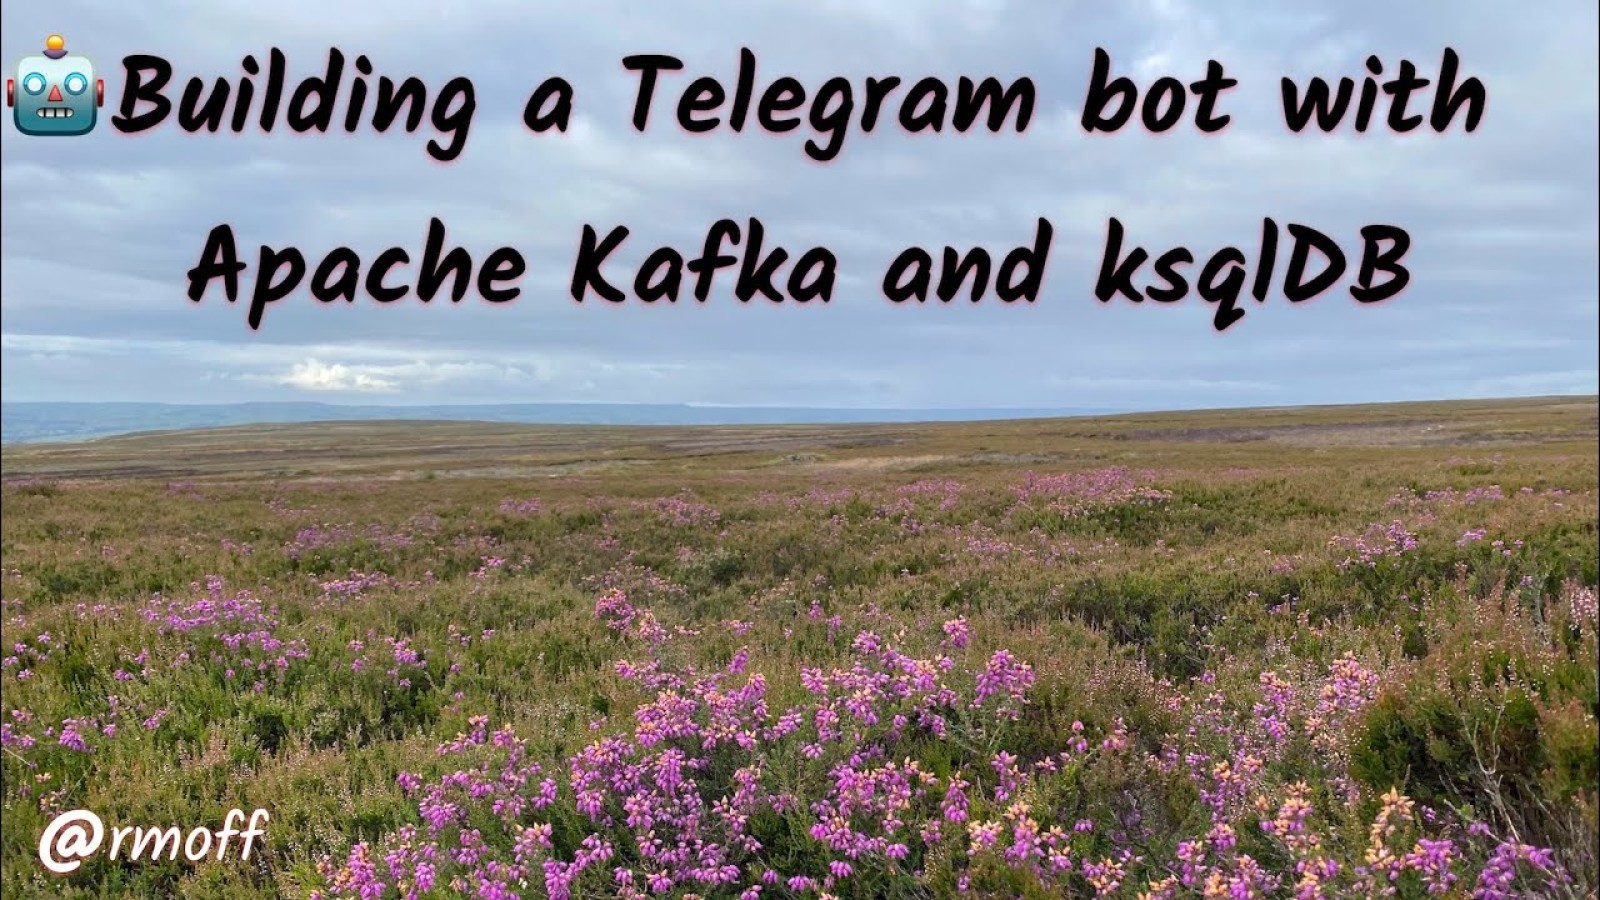 🤖Building a Telegram bot with Apache Kafka and ksqlDB